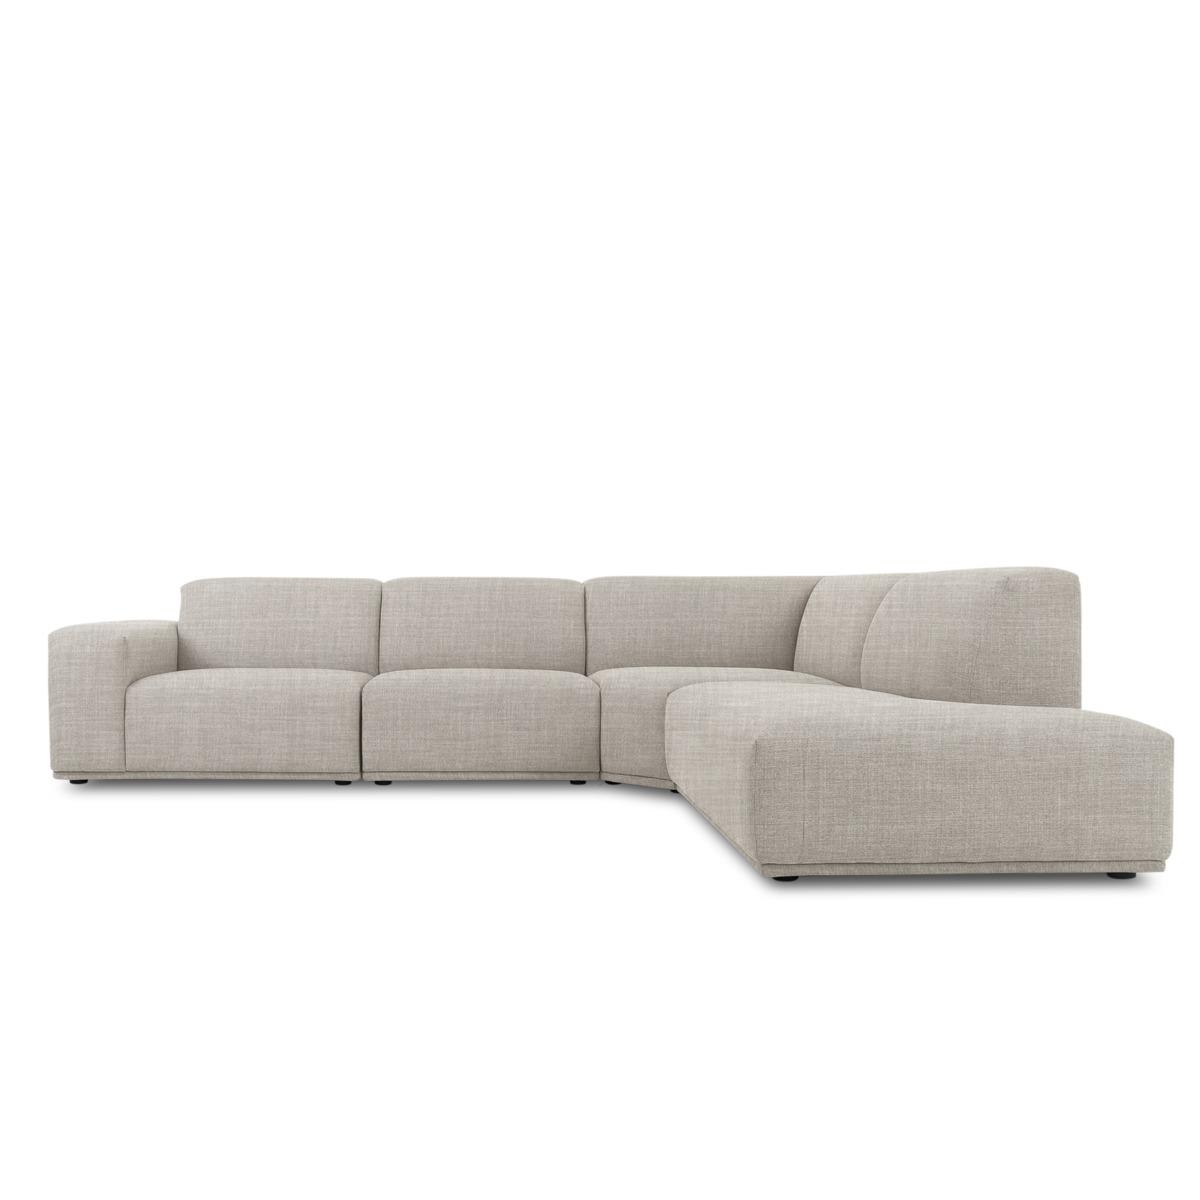 Castlery Sofa Set Compare Prices Online Shopping Australia